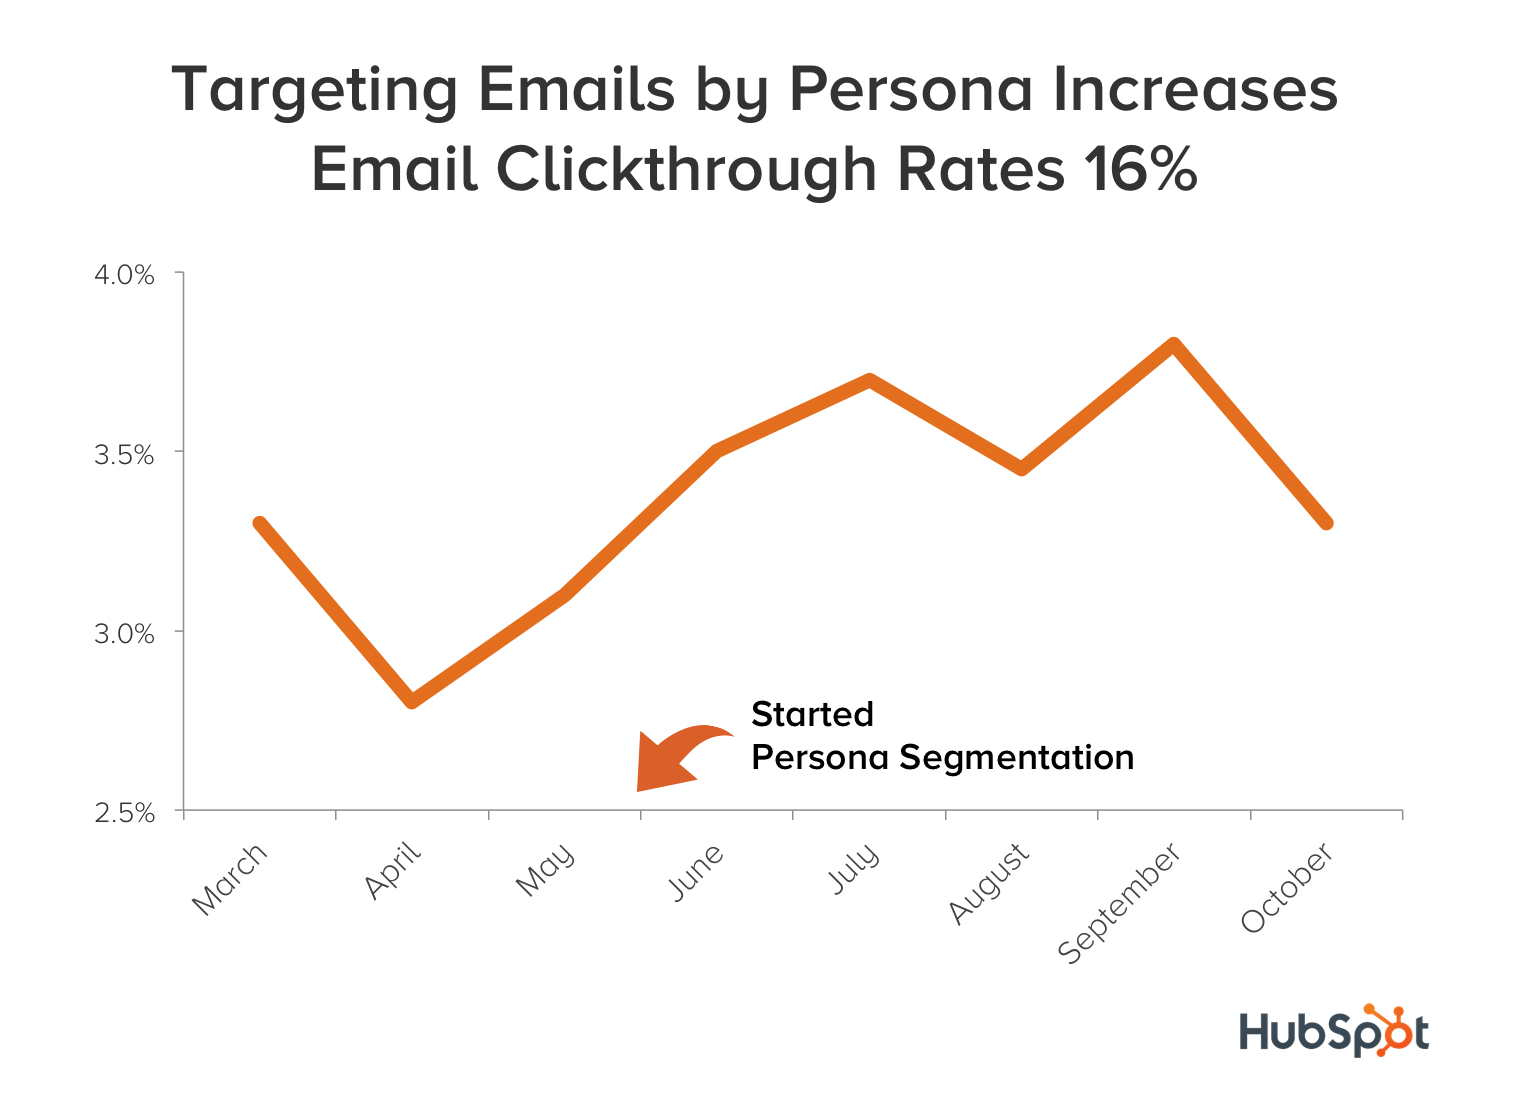 targeting-emails-by-persona-increases-email-clickthrough-rates-by-16-percent